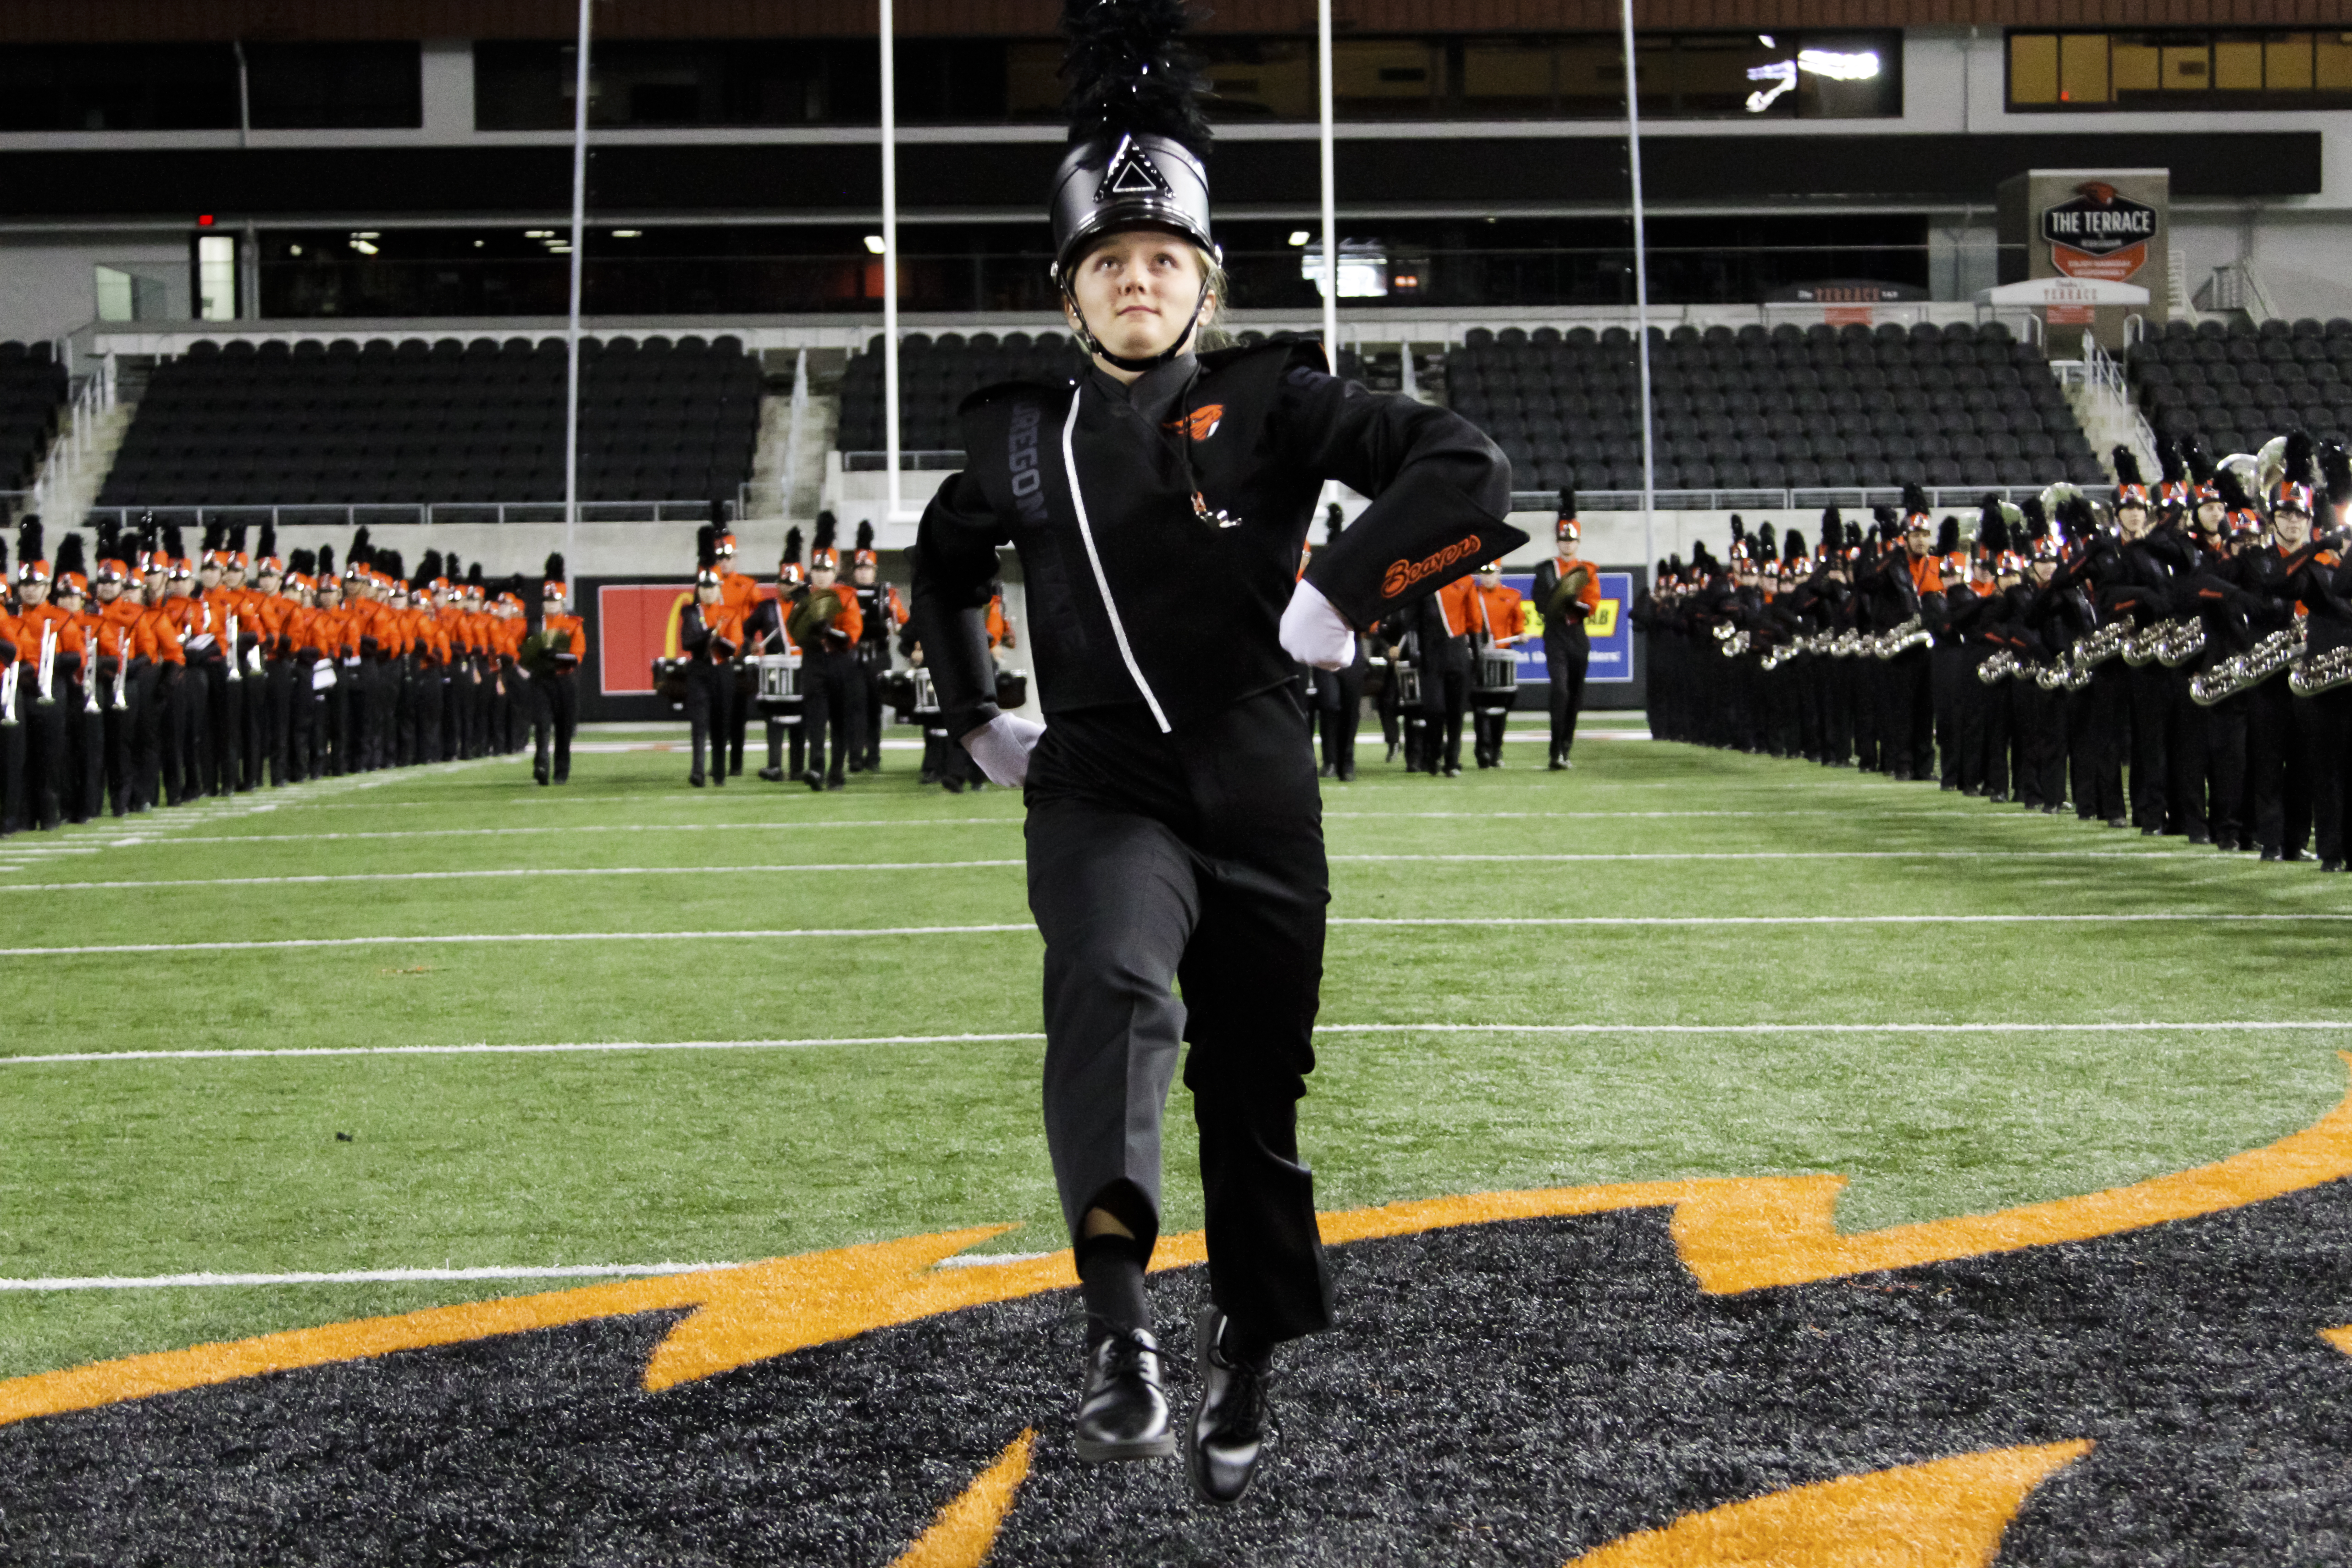 A drum major on the field.